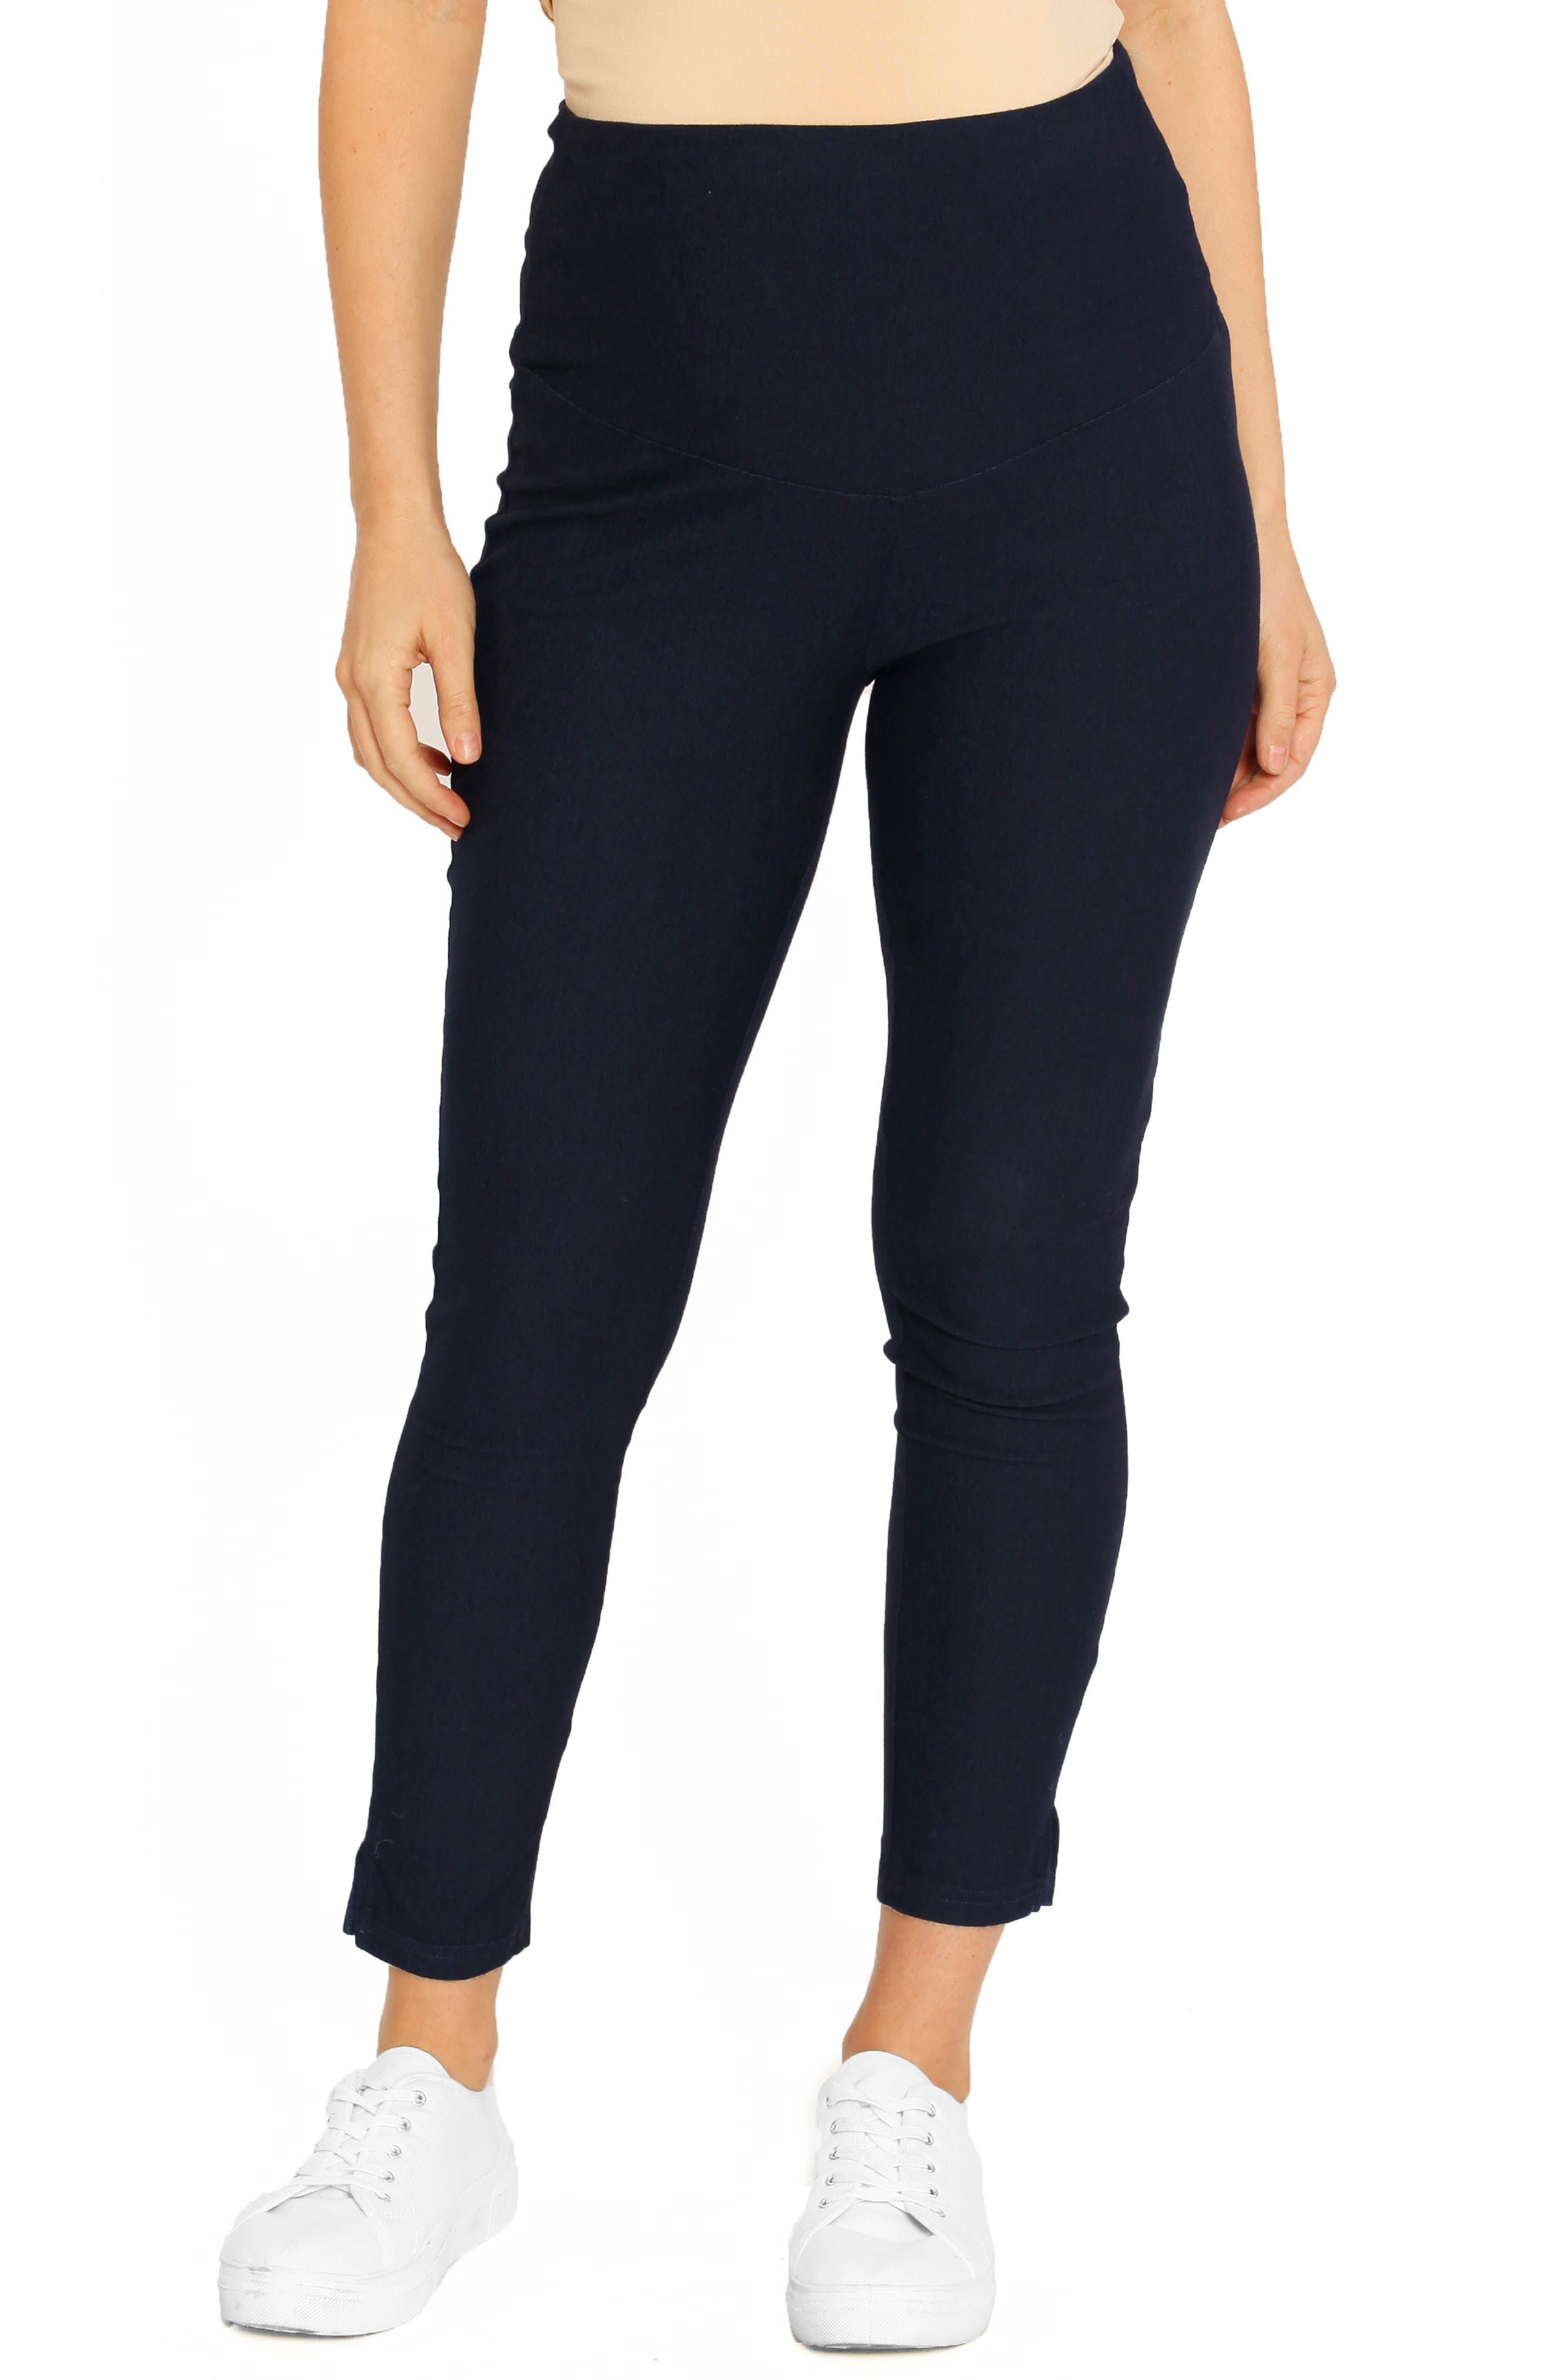 Women's Angel Maternity Deluxe Tummy Support High Waist Maternity Pants